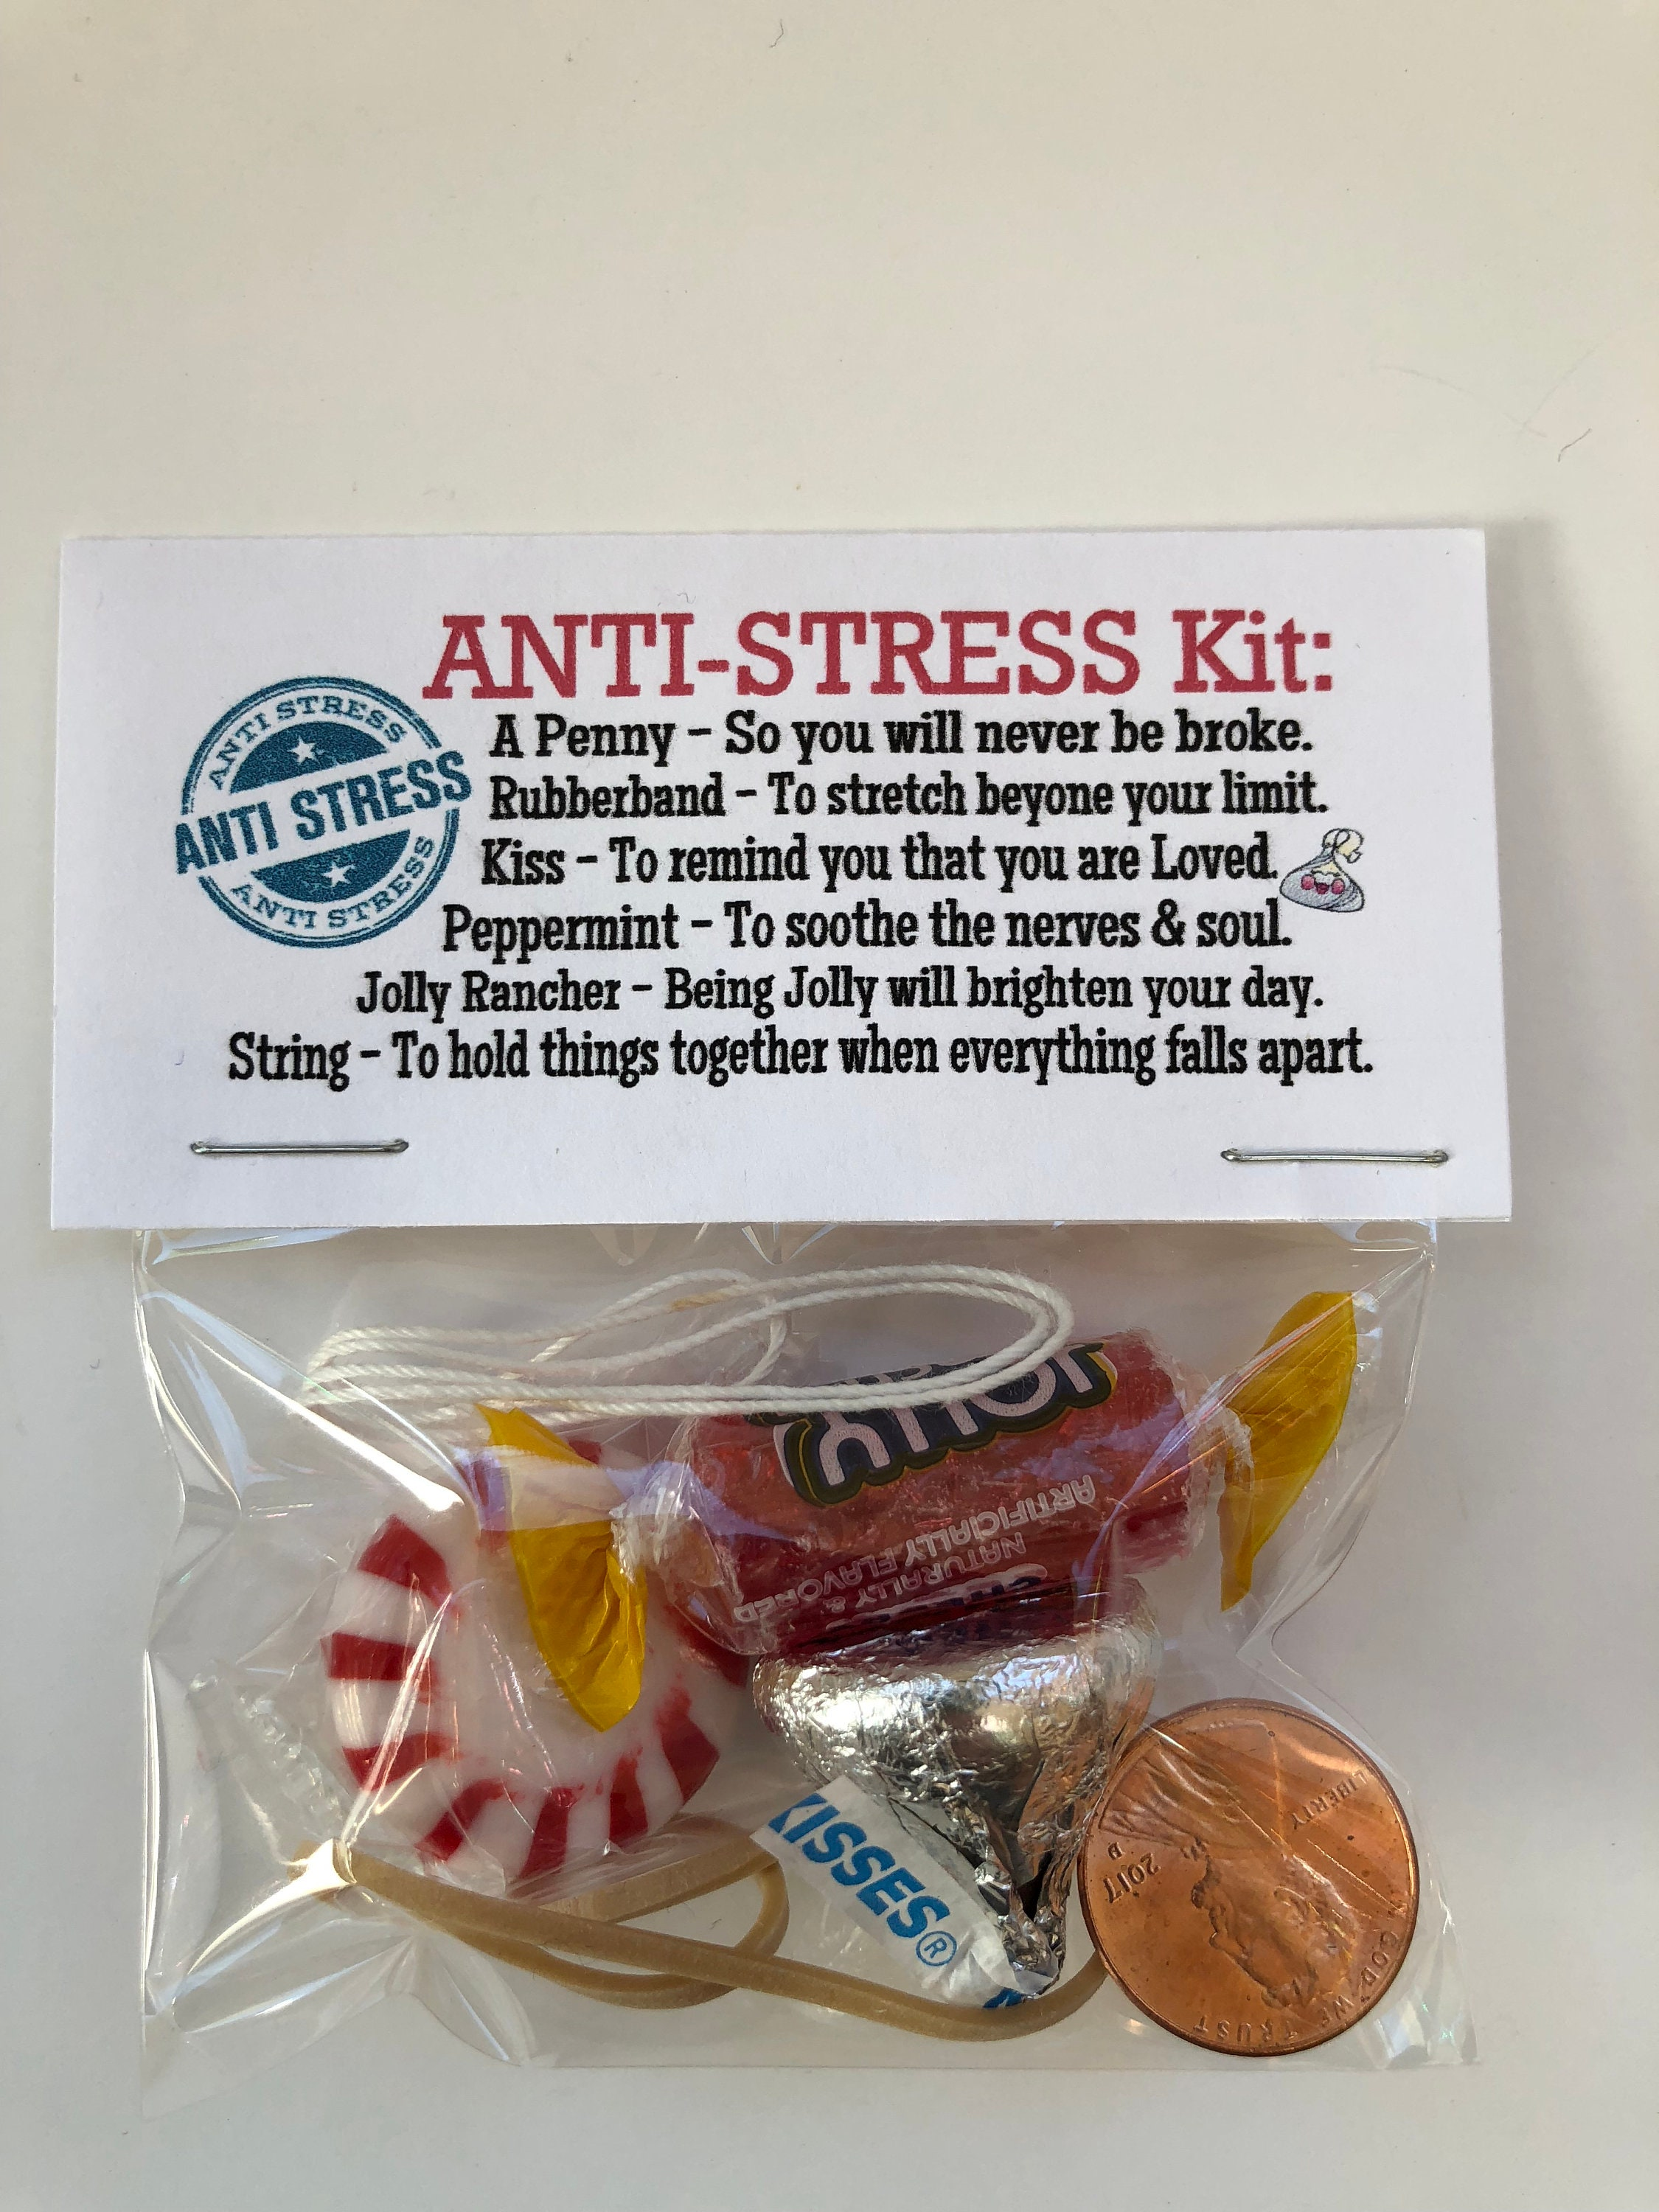 ANTI STRESS Kit Gag Gift Bags Funny Silly Prank Goody